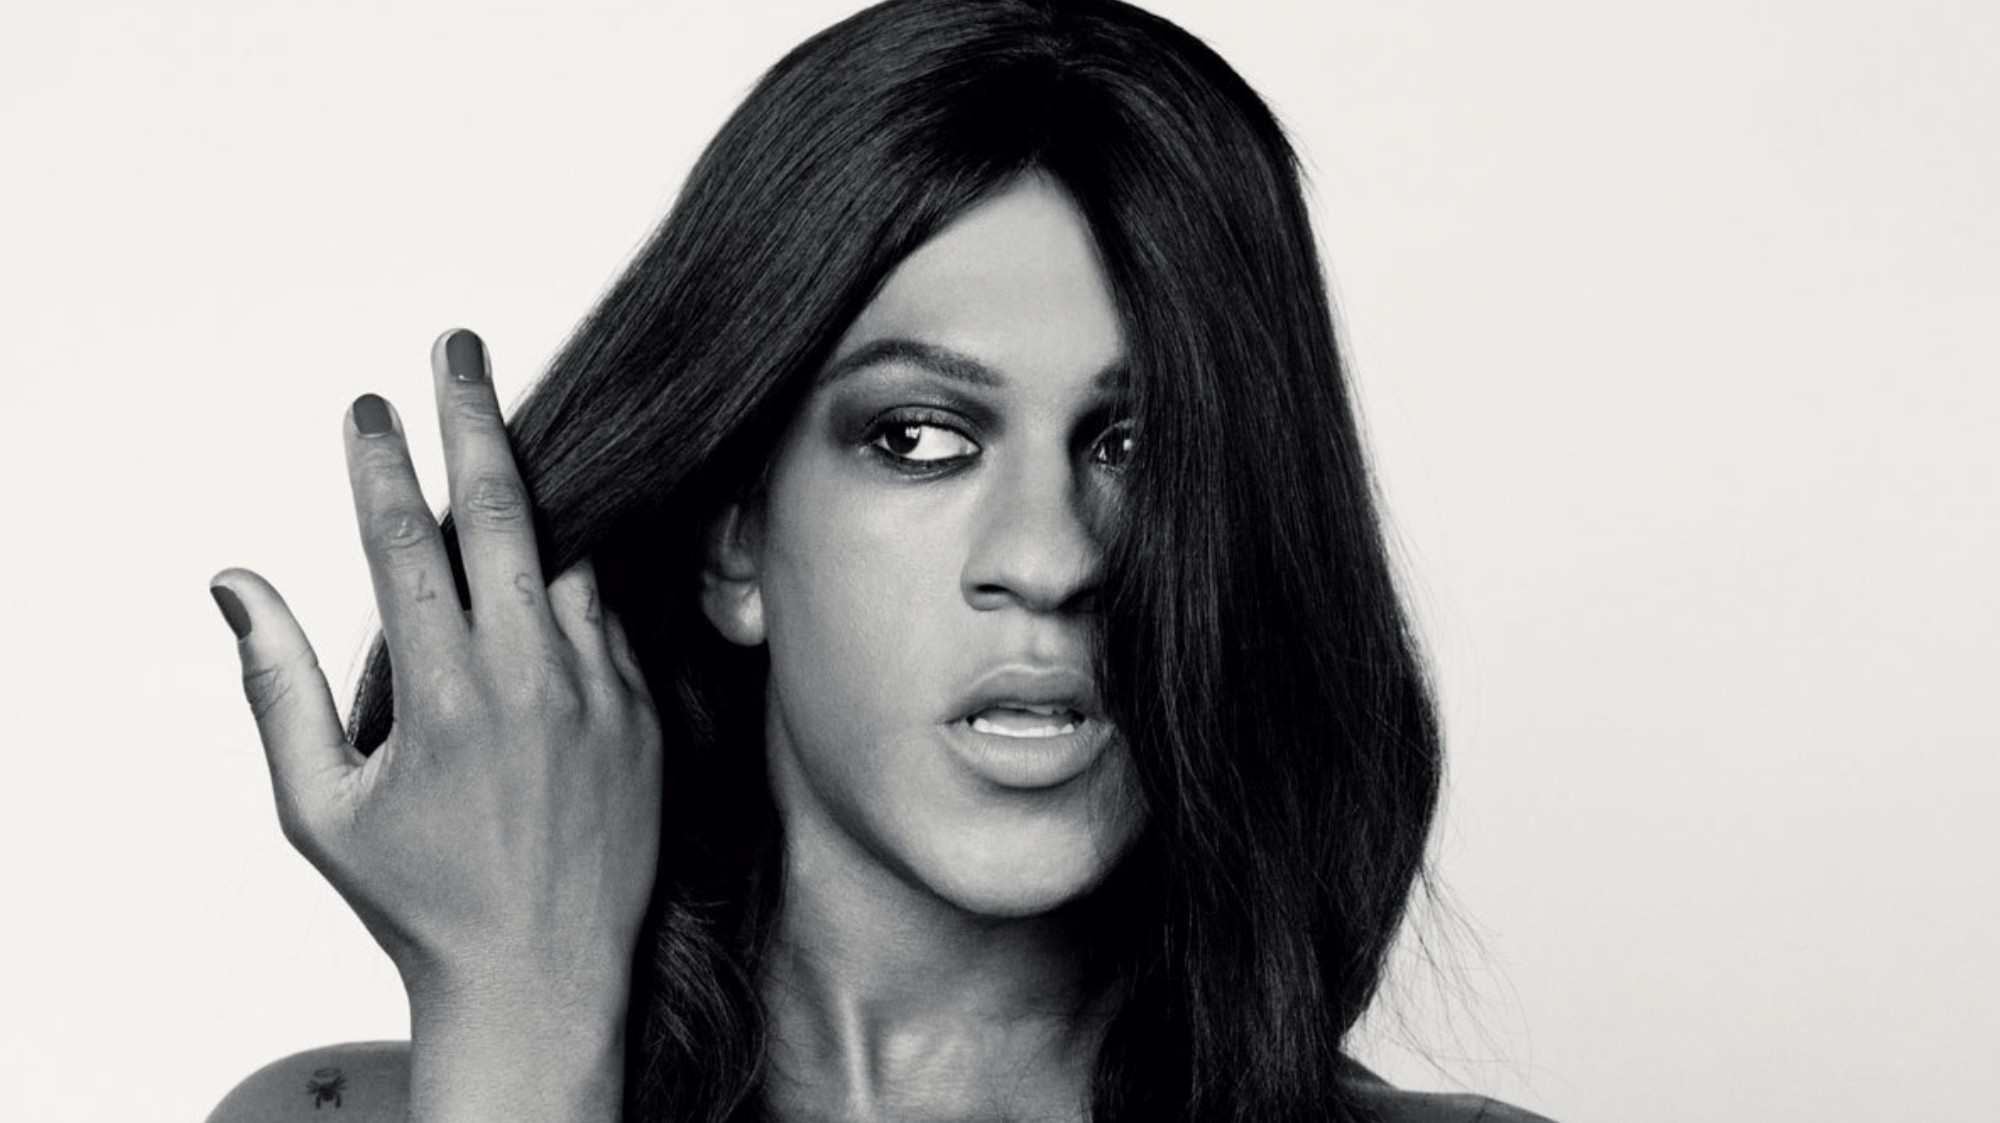 mykki blanco's i-Deale dag is gevuld met dim sum en decadentie